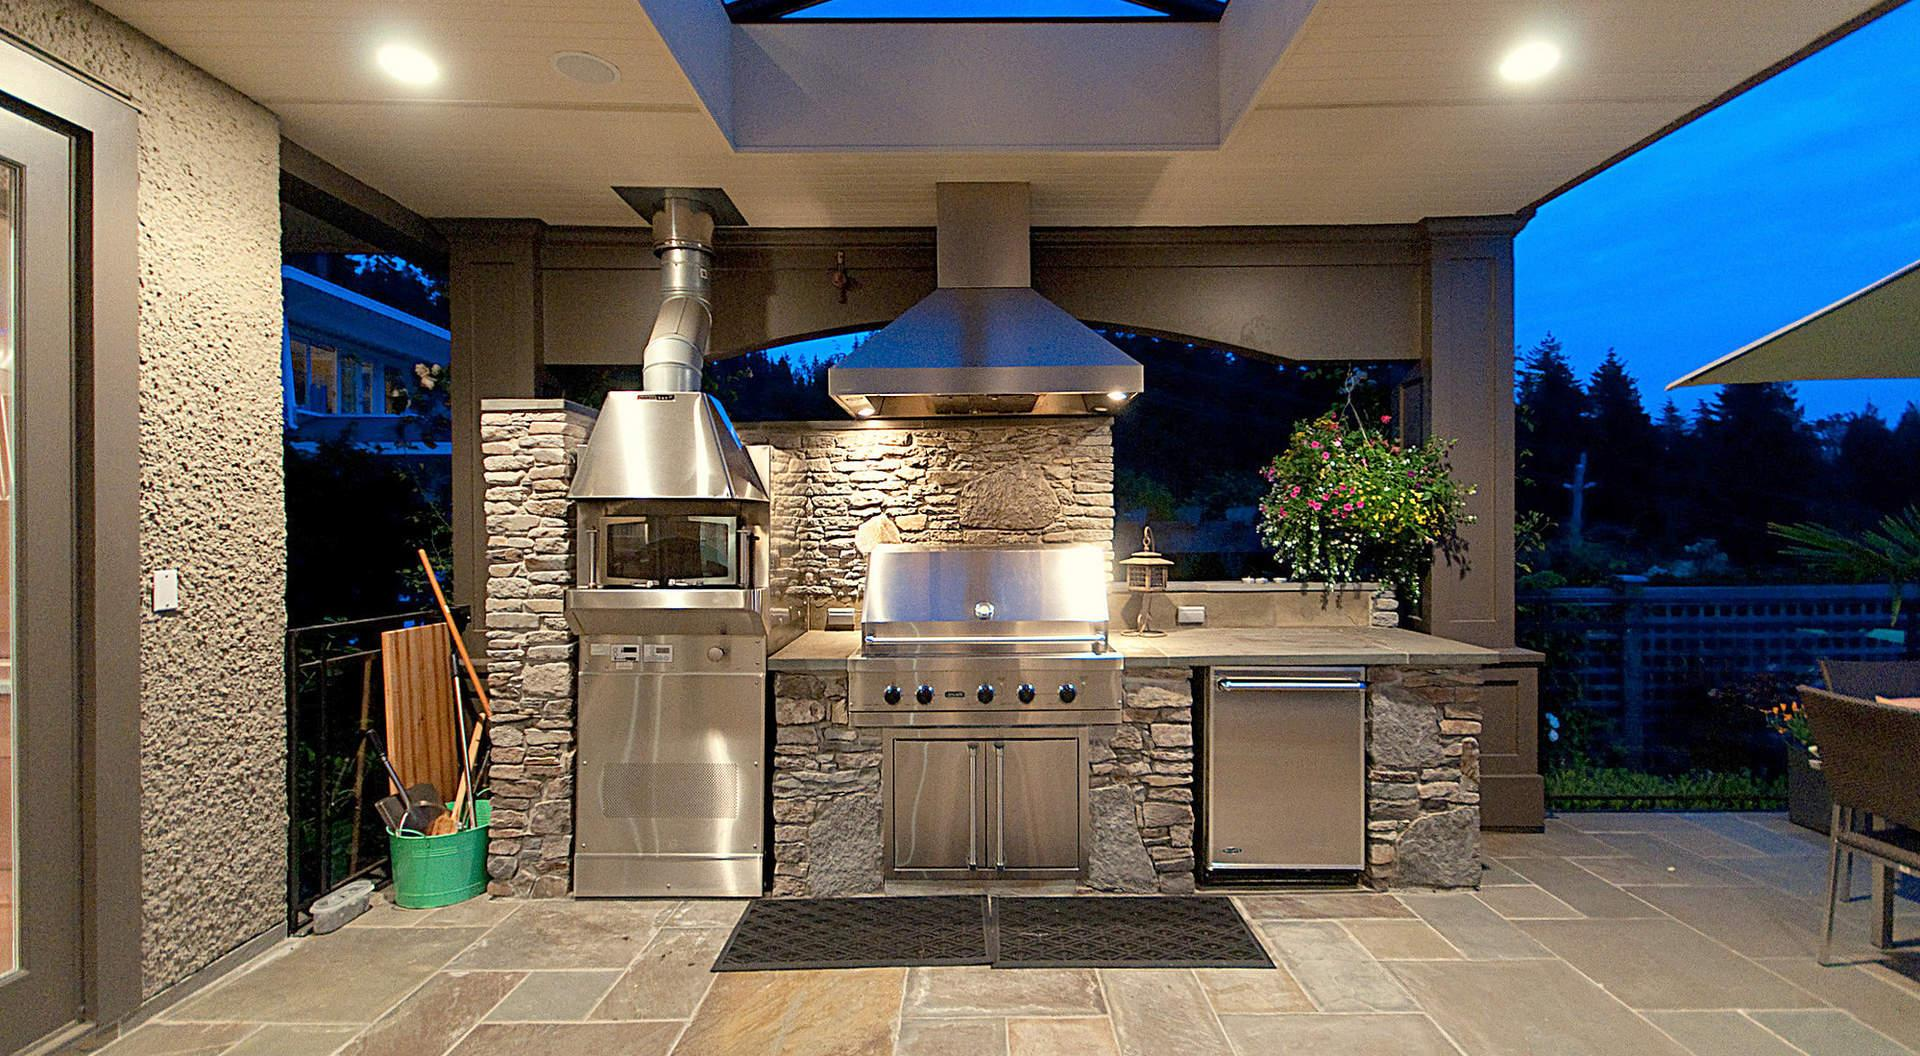 A marvelous small stone outdoor kitchen